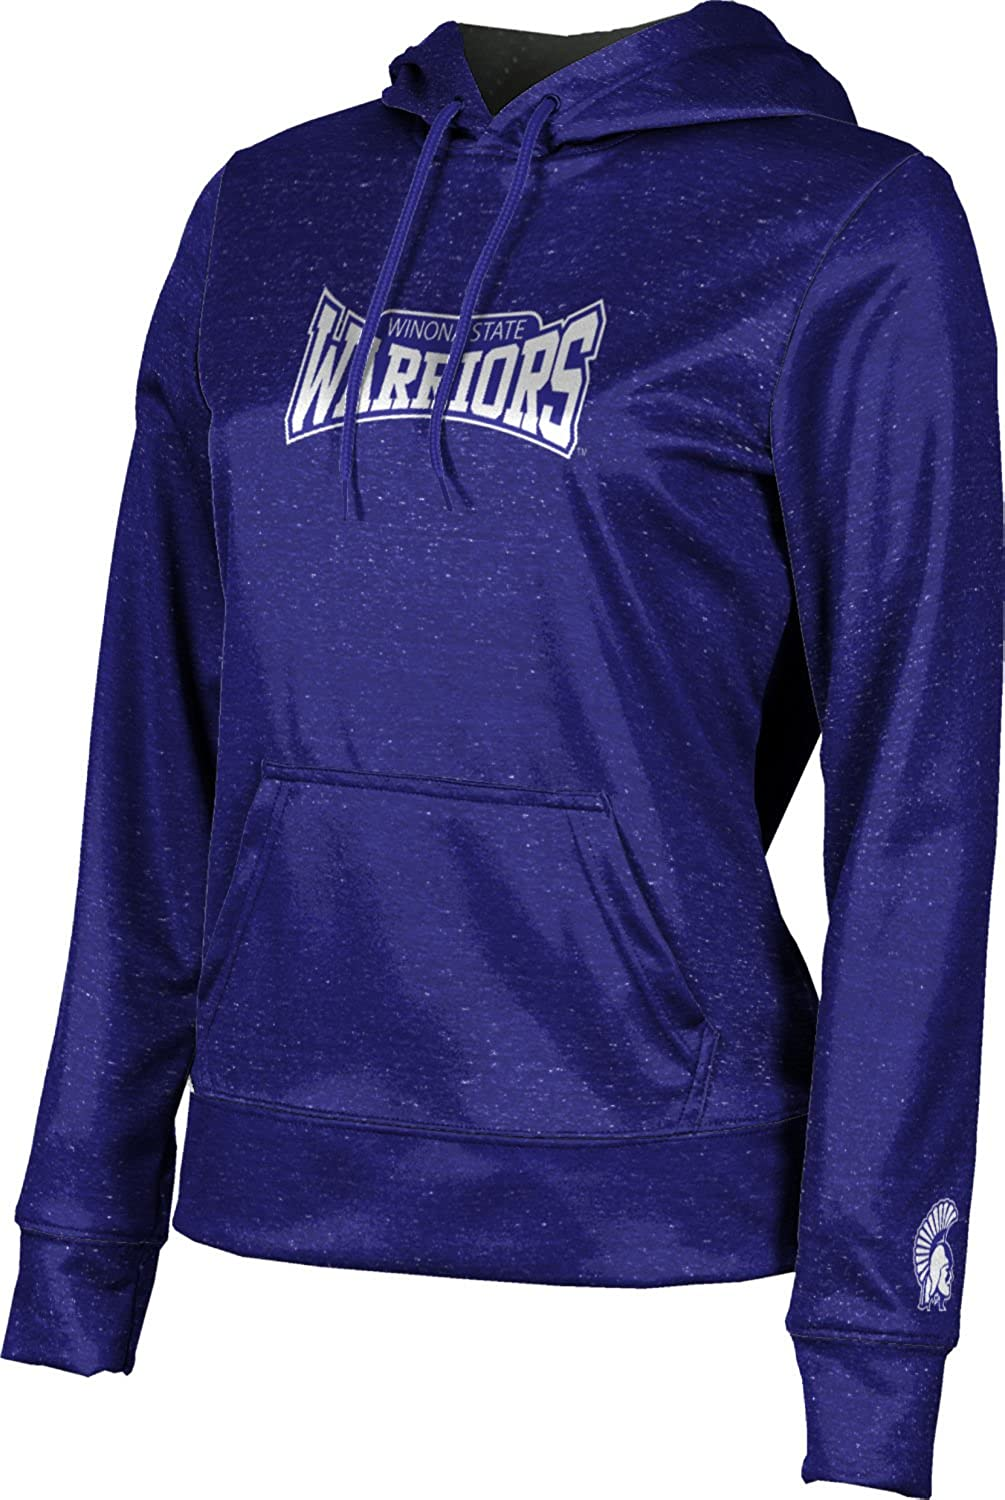 ProSphere Winona State University Girls Pullover Hoodie School Spirit Sweatshirt Distressed